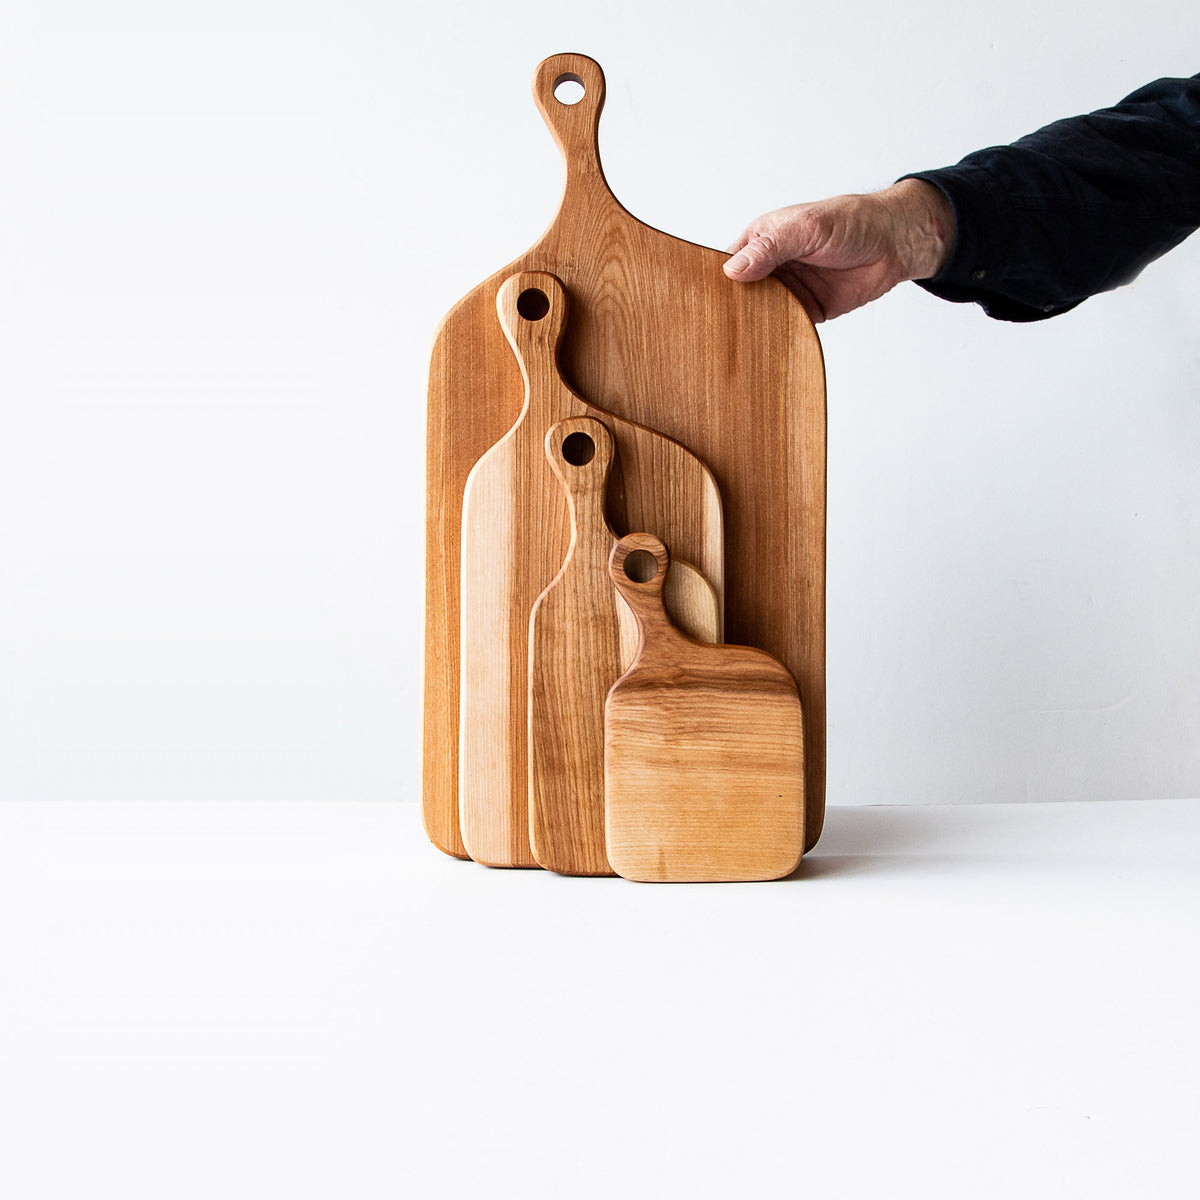 Service & Cutting Boards Collection in Birch - Sold by Chic & Basta